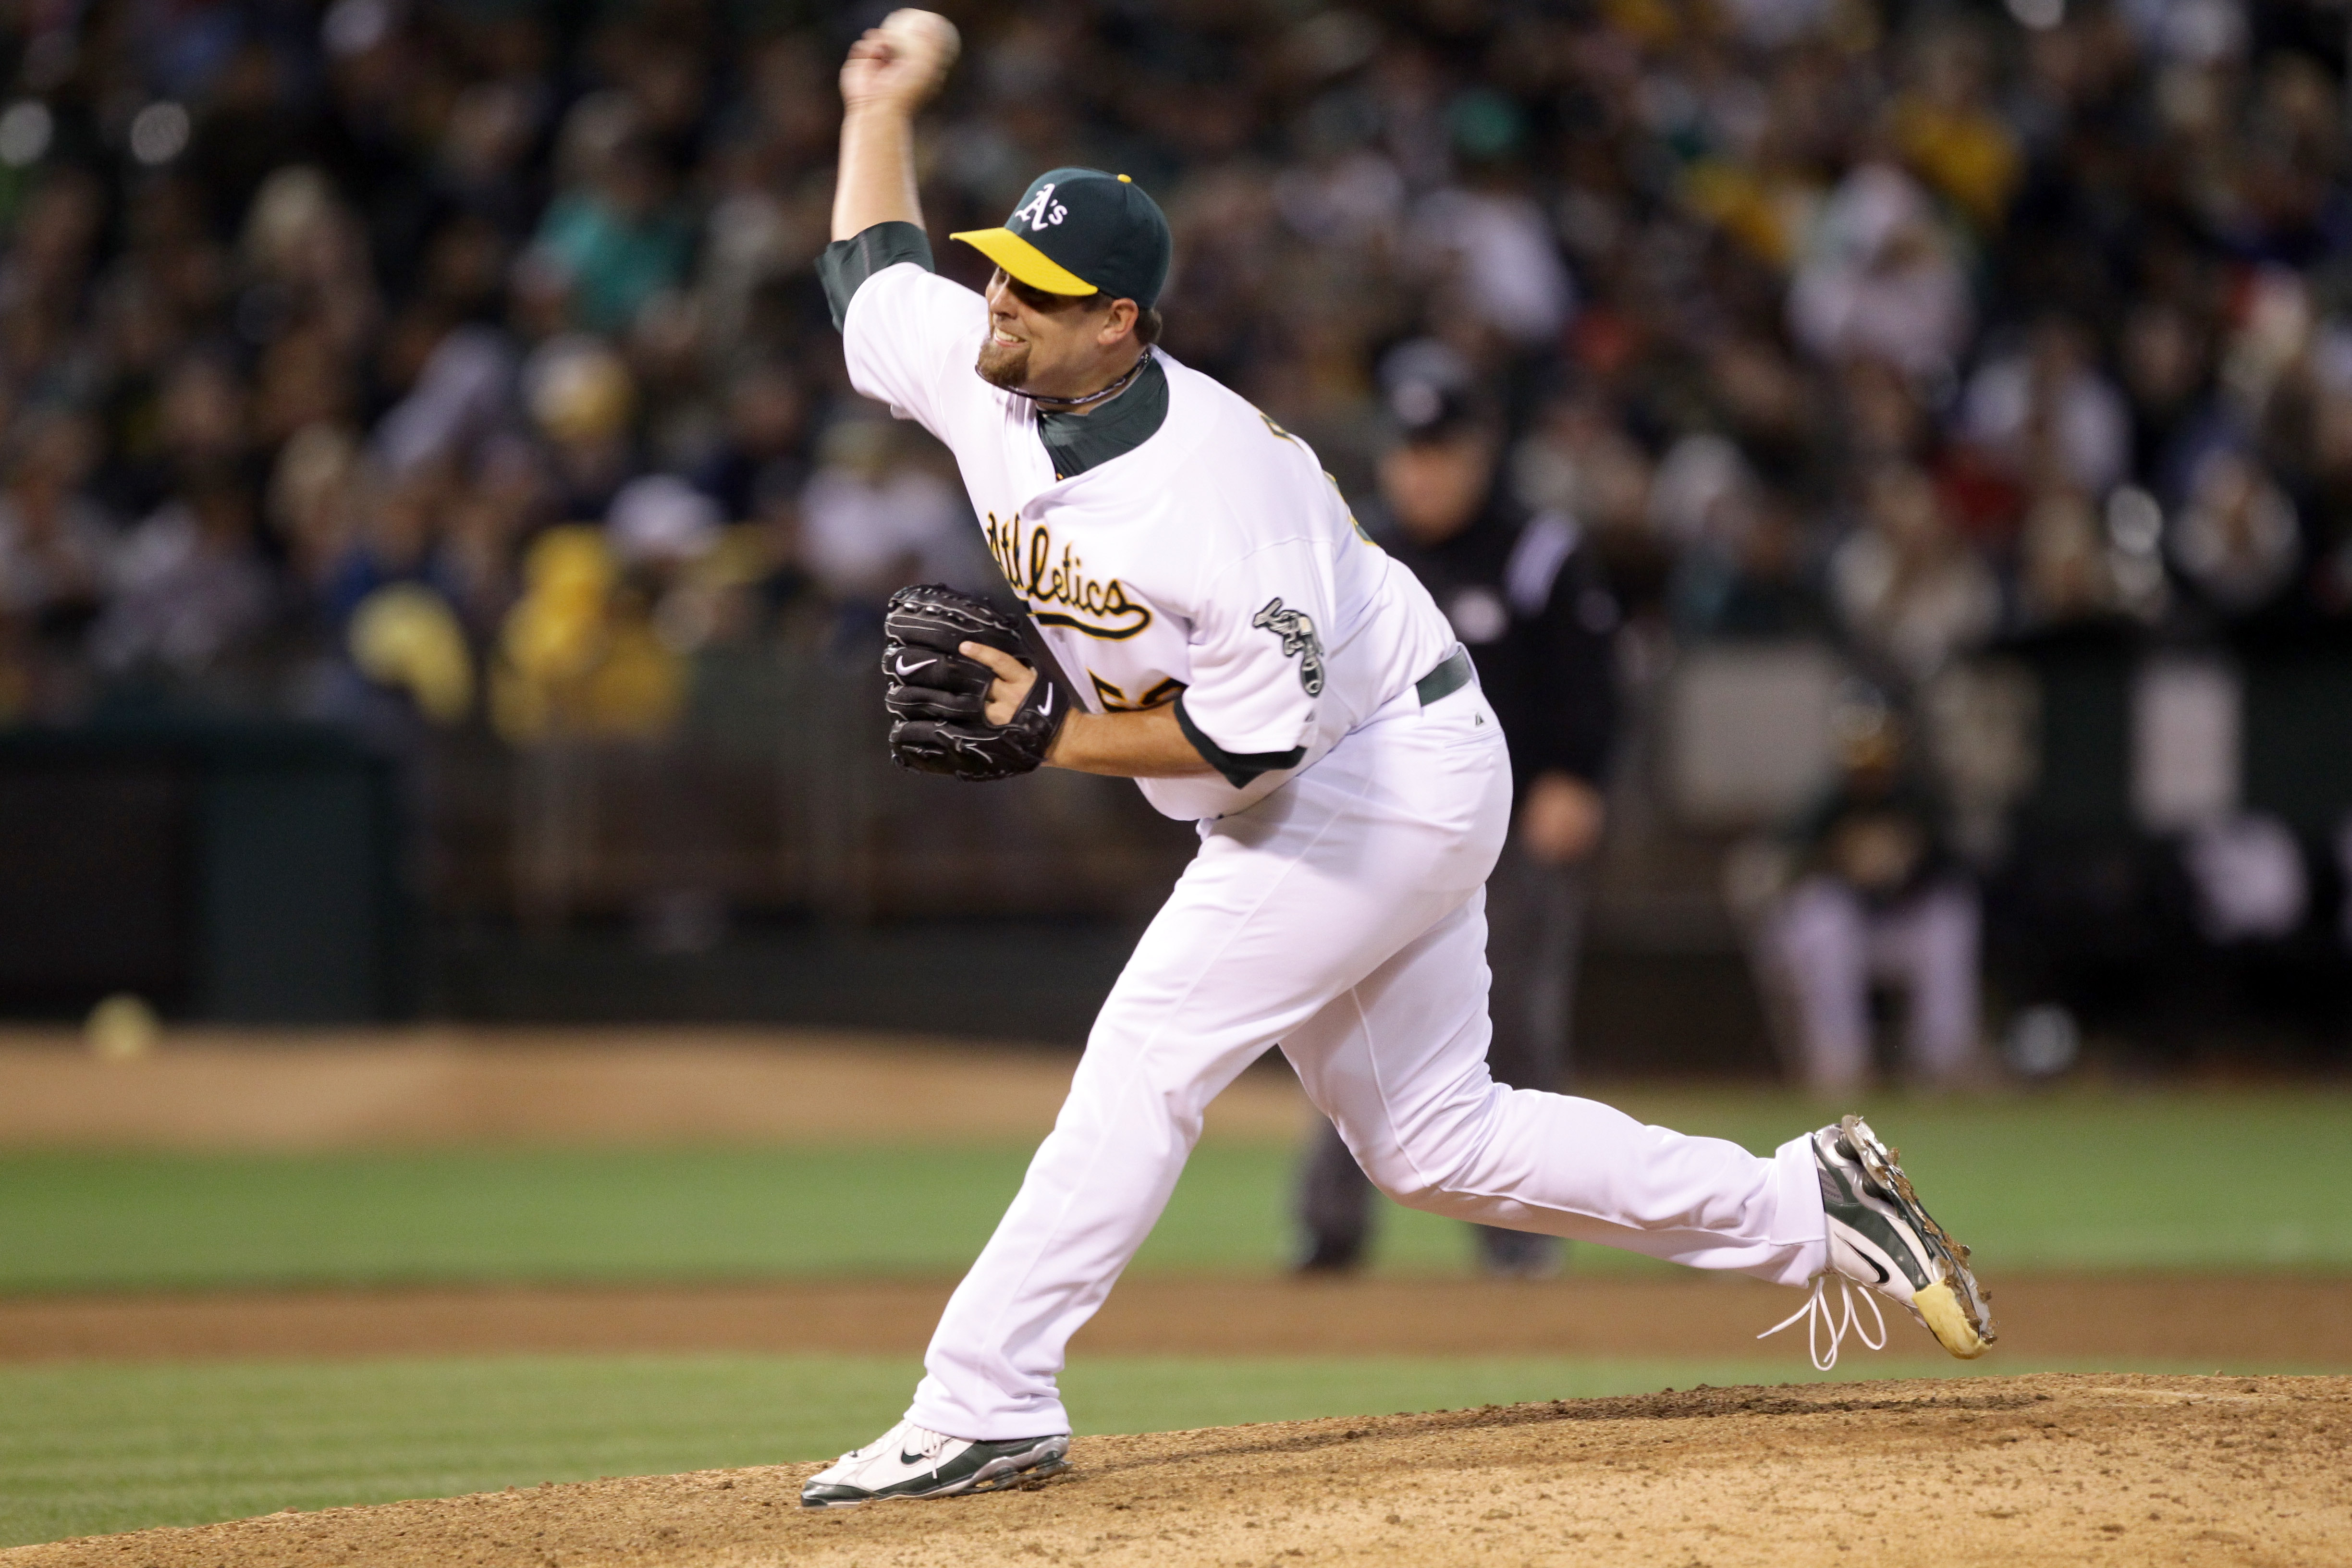 OAKLAND, CA - AUGUST 06:  Boof Bonser #52 of the Oakland Athletics pitches against the Texas Rangers at the Oakland-Alameda County Coliseum on August 6, 2010 in Oakland, California.  (Photo by Ezra Shaw/Getty Images)